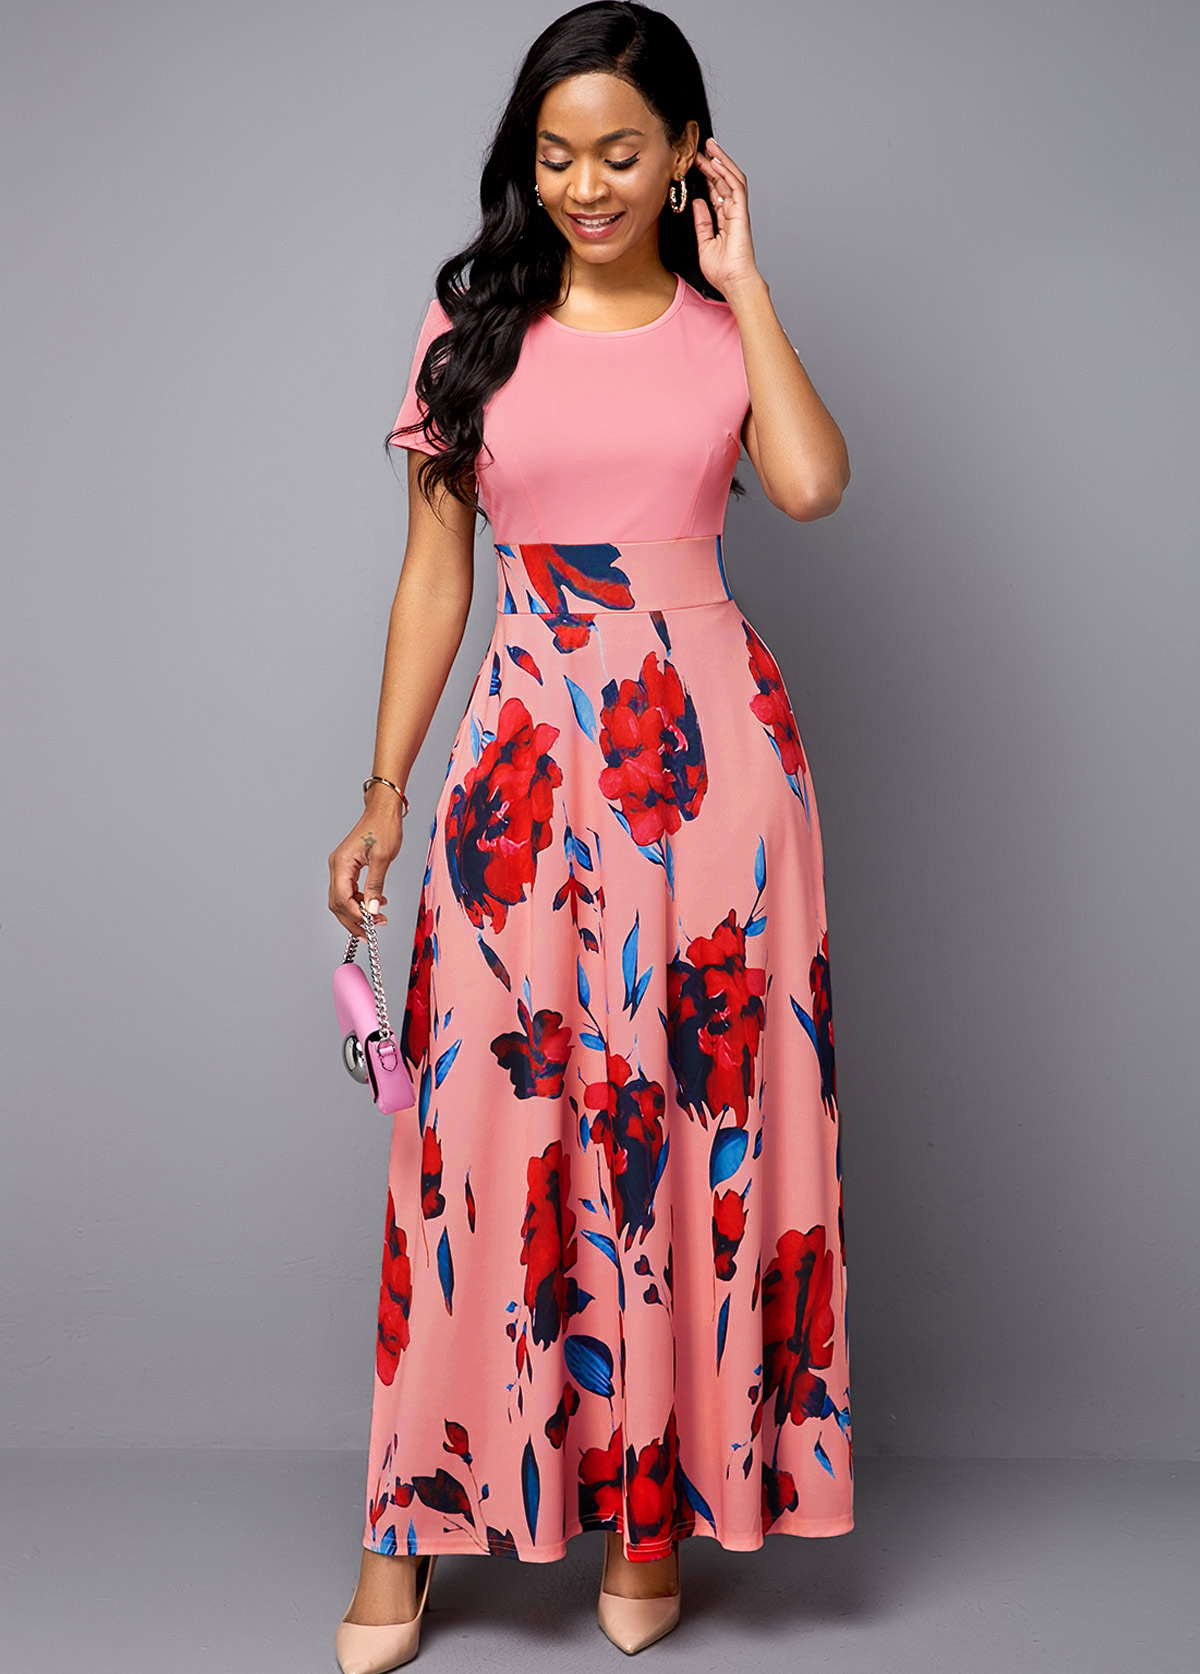 Flower Print Short Sleeve Pink Dress